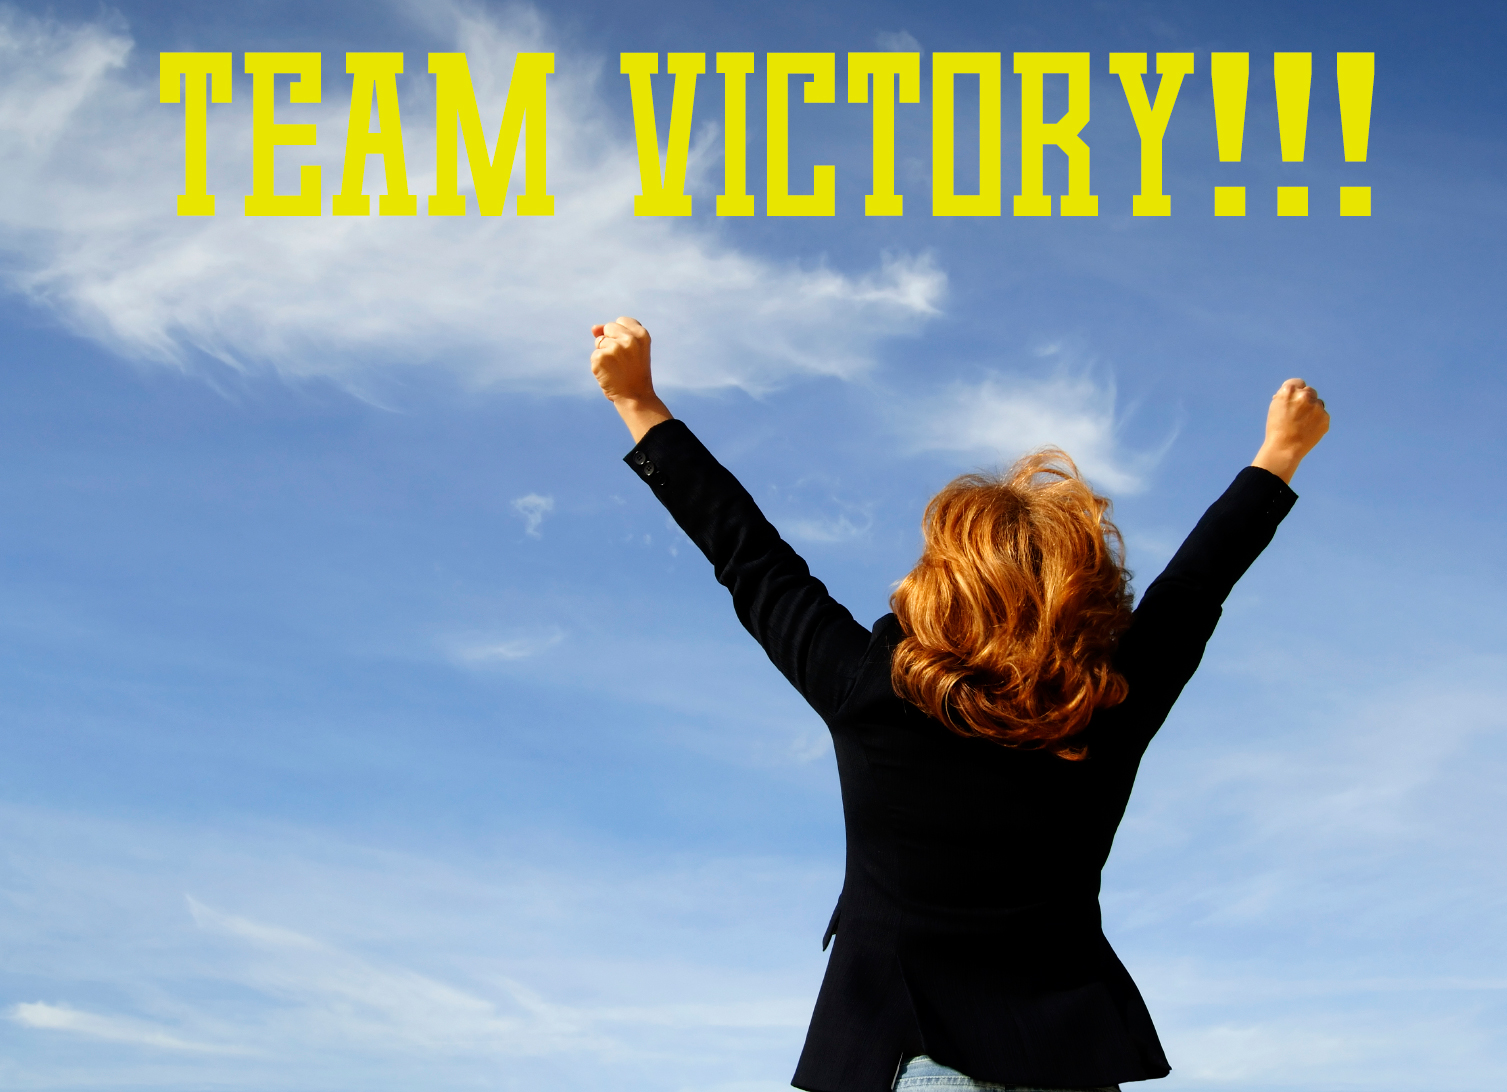 woman-victory-against-sky